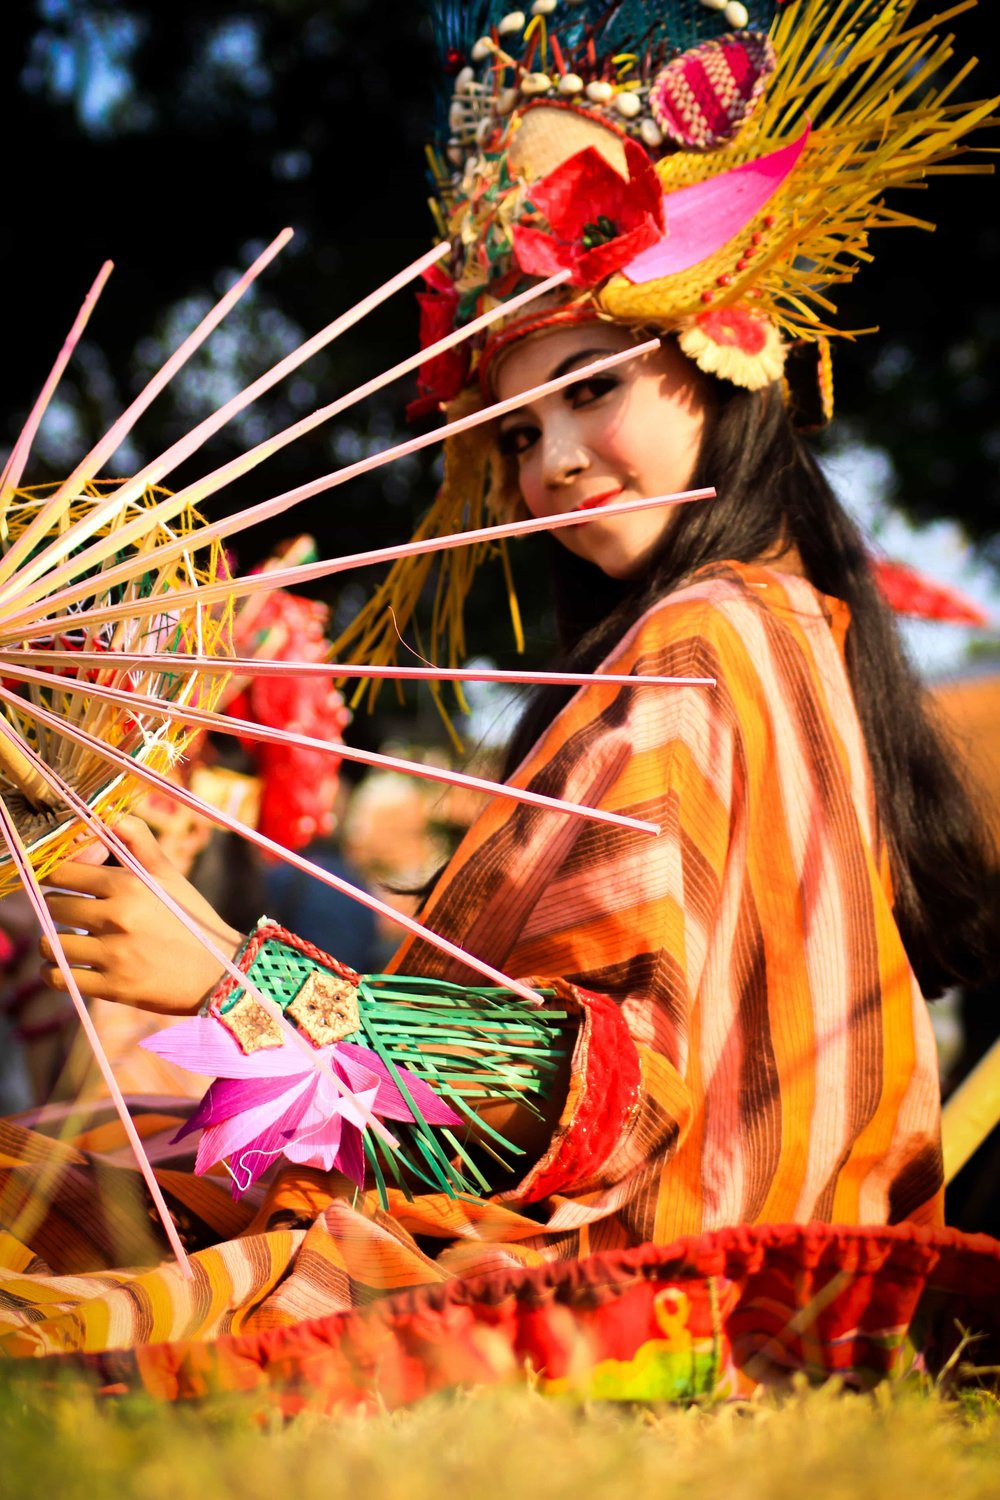 Cultural dancers or performers in colourful costumes like this one can and should be considered an element of your event decor.